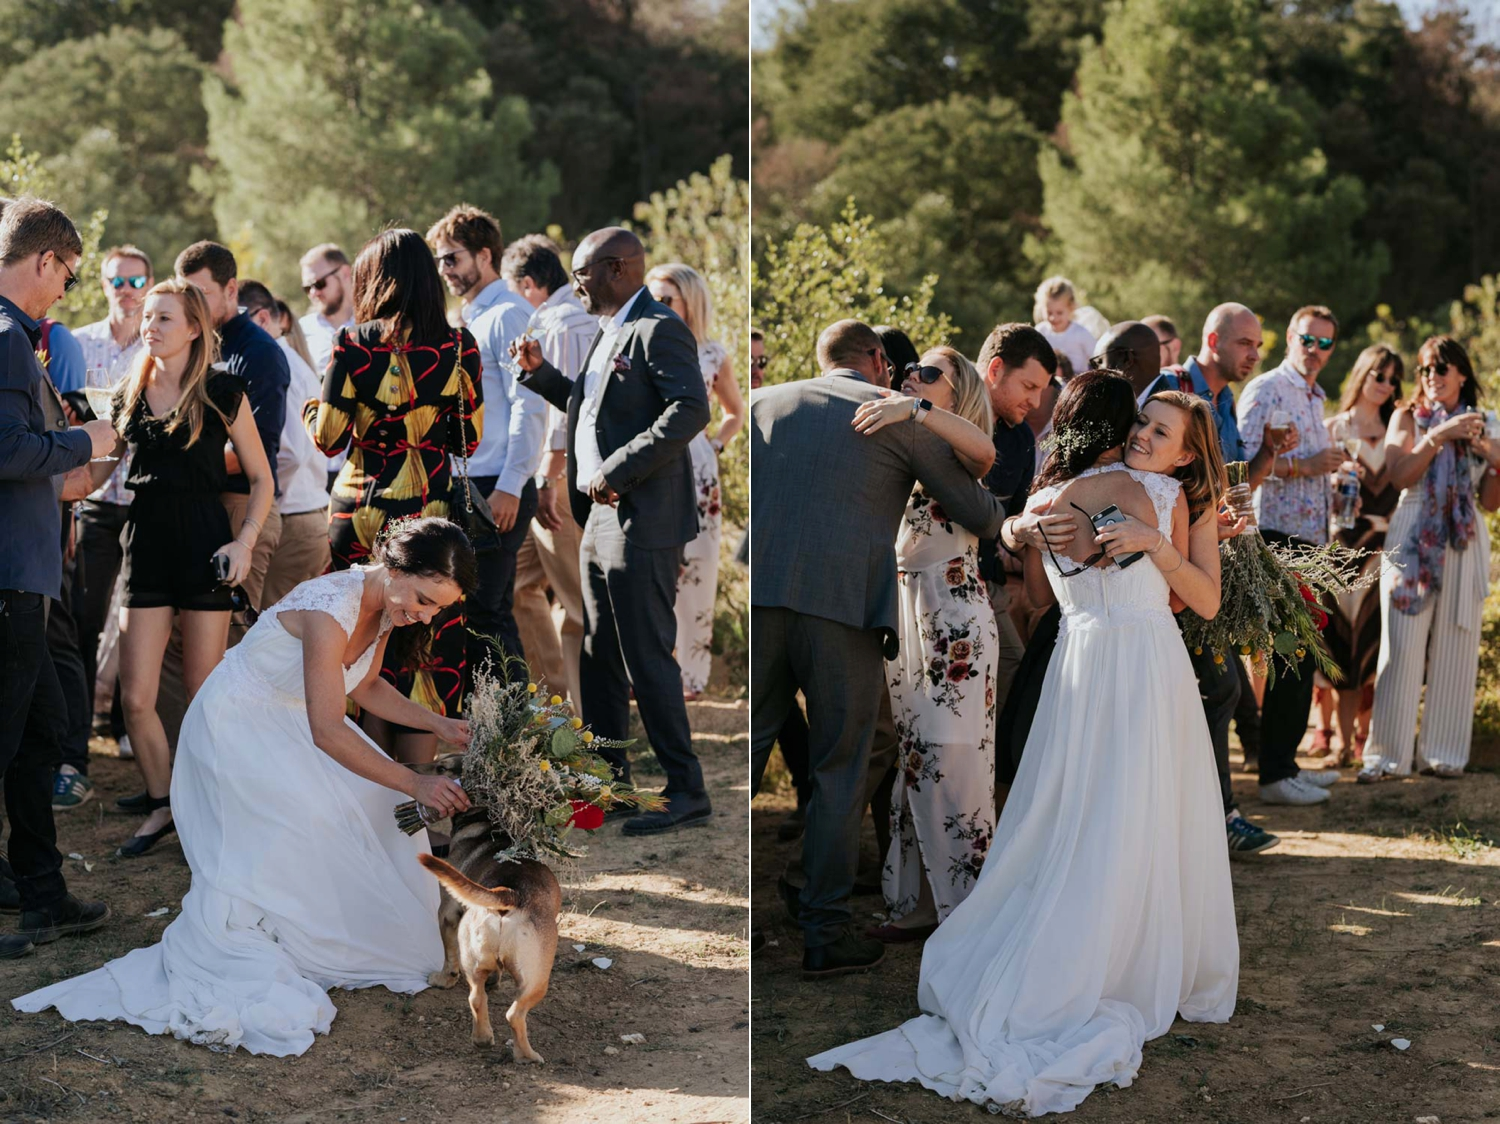 Fun and authentic bride patting her dog after her wedding ceremony